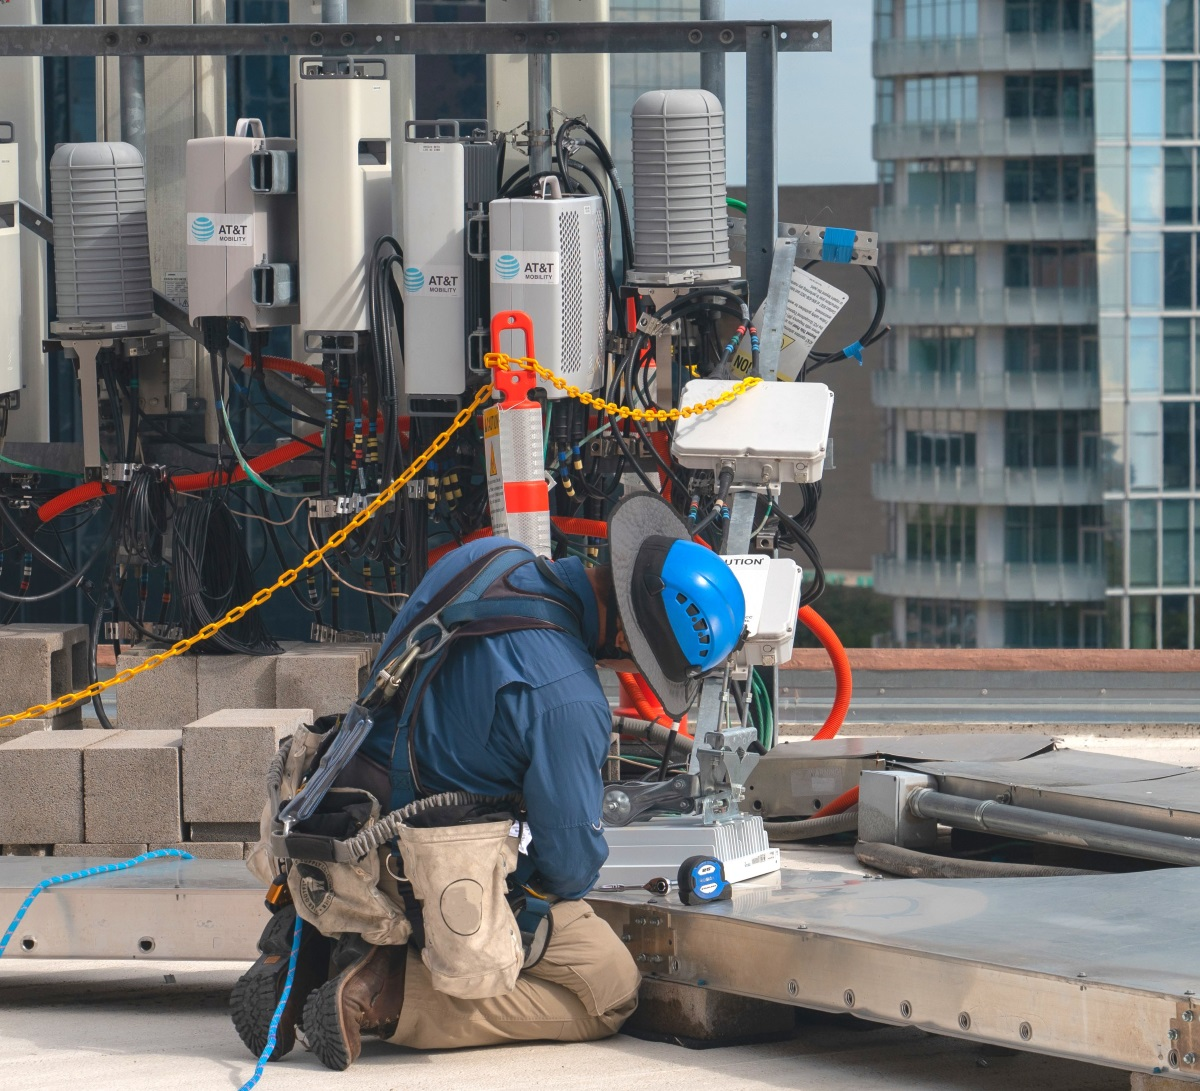 Ee Times Electronic Engineering Connecting The Global Battery Light Bulb And Wire Http Govinsciencezoneblogspotcom 2011 Att Adds To 5g Confusion Blog